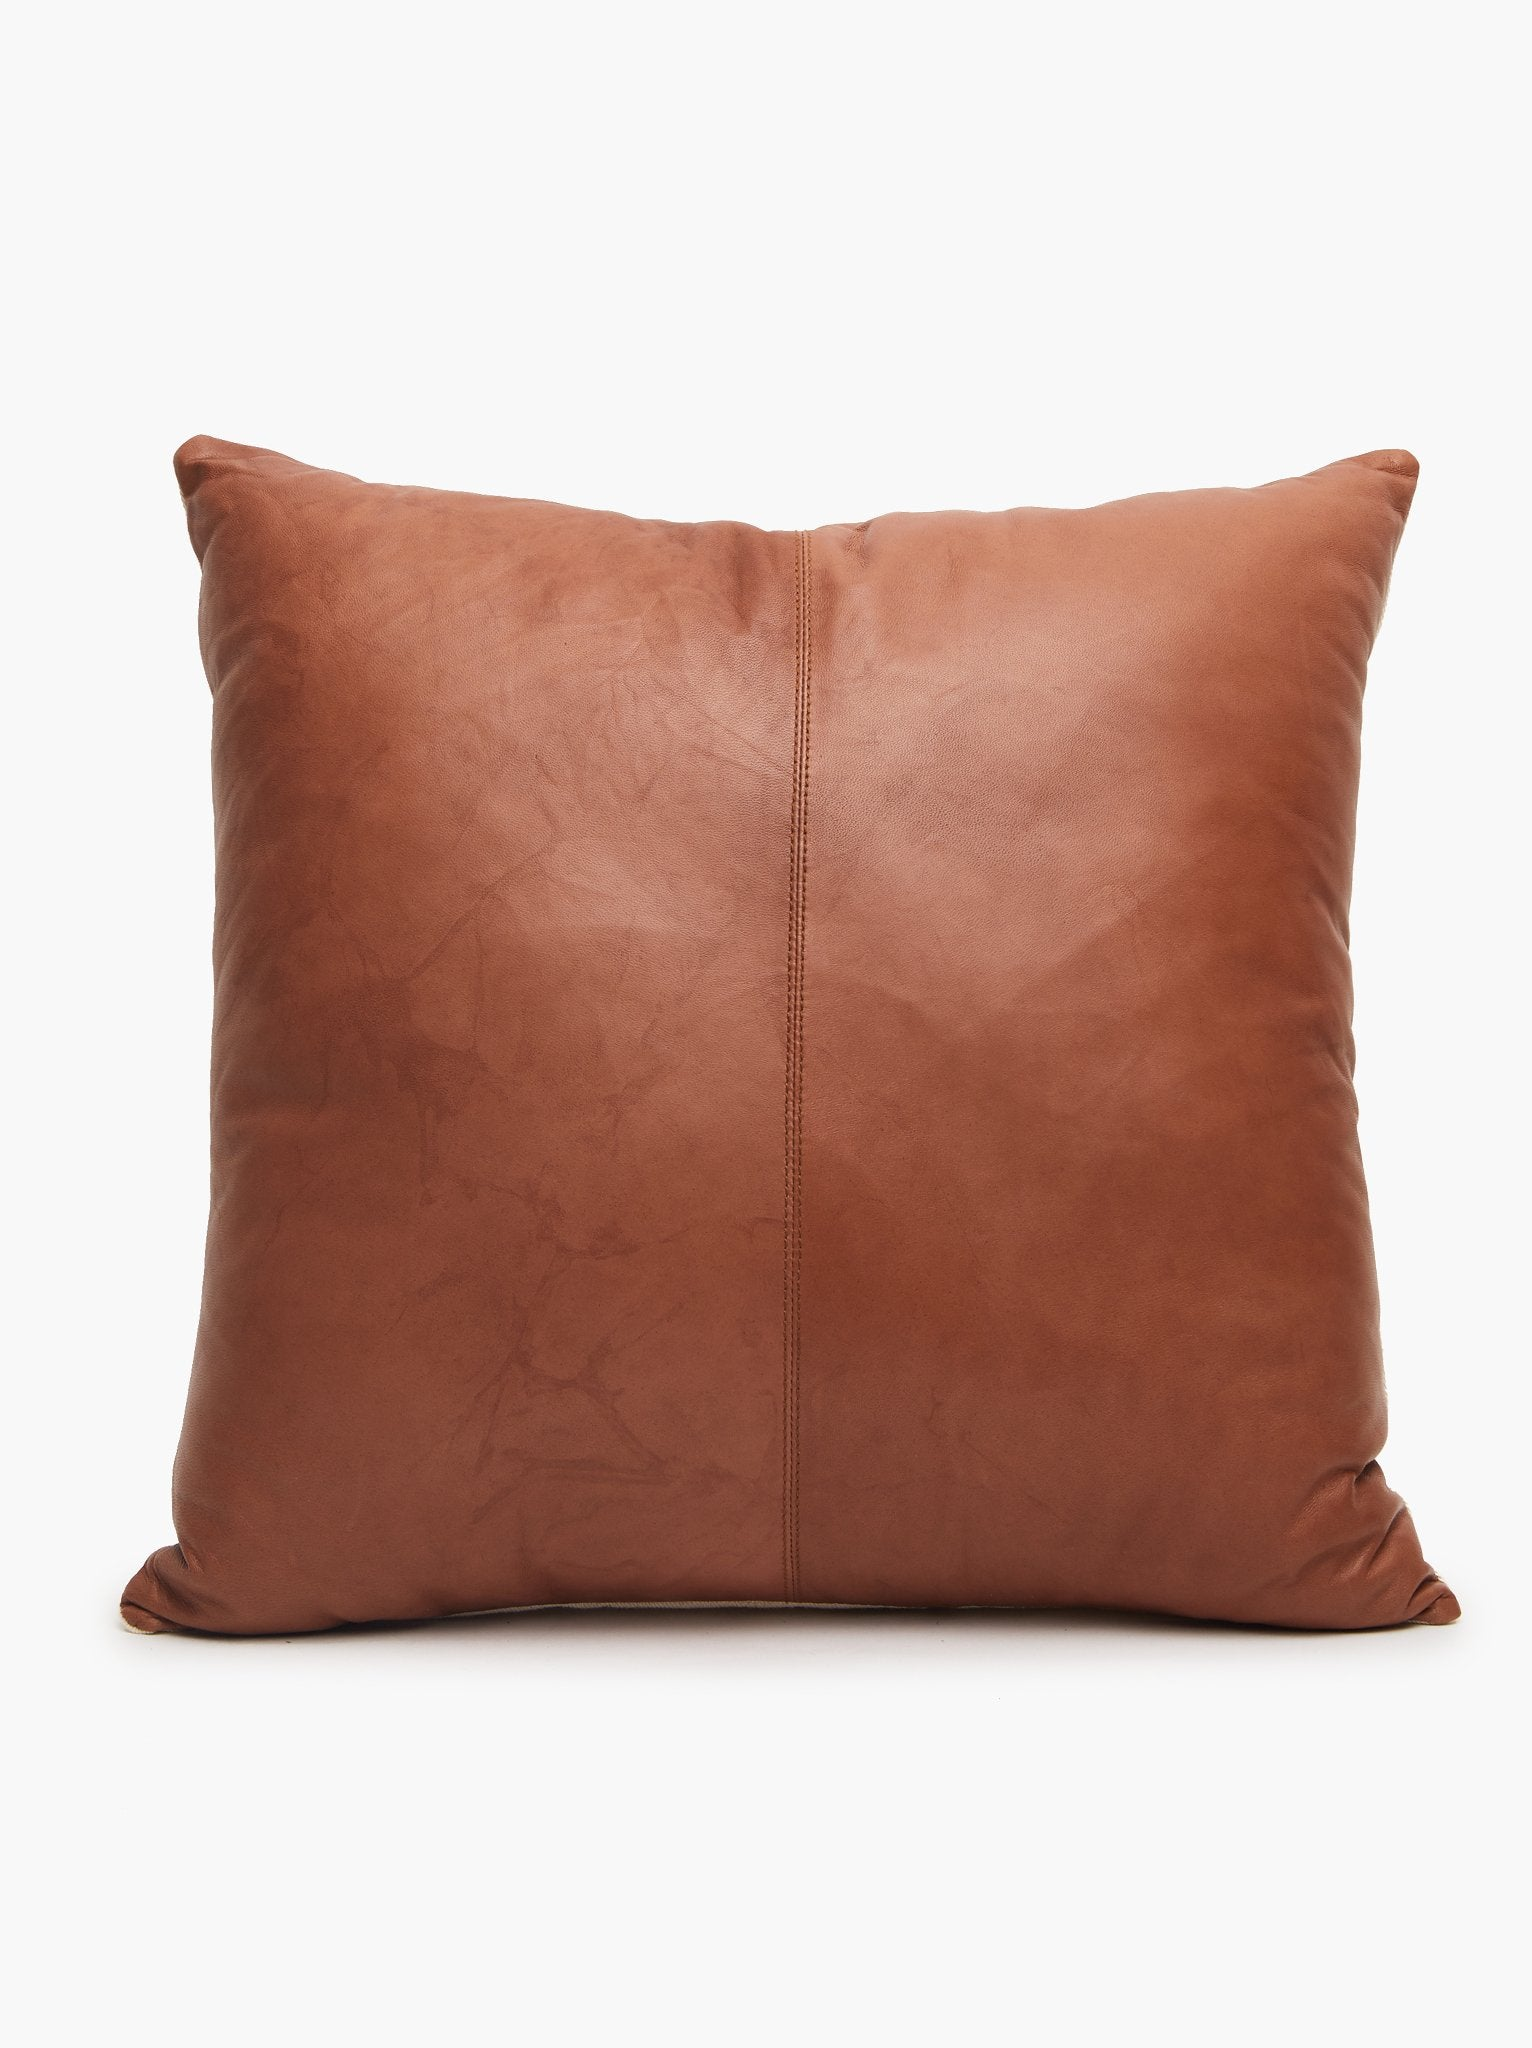 Pushpa Leather Pillow